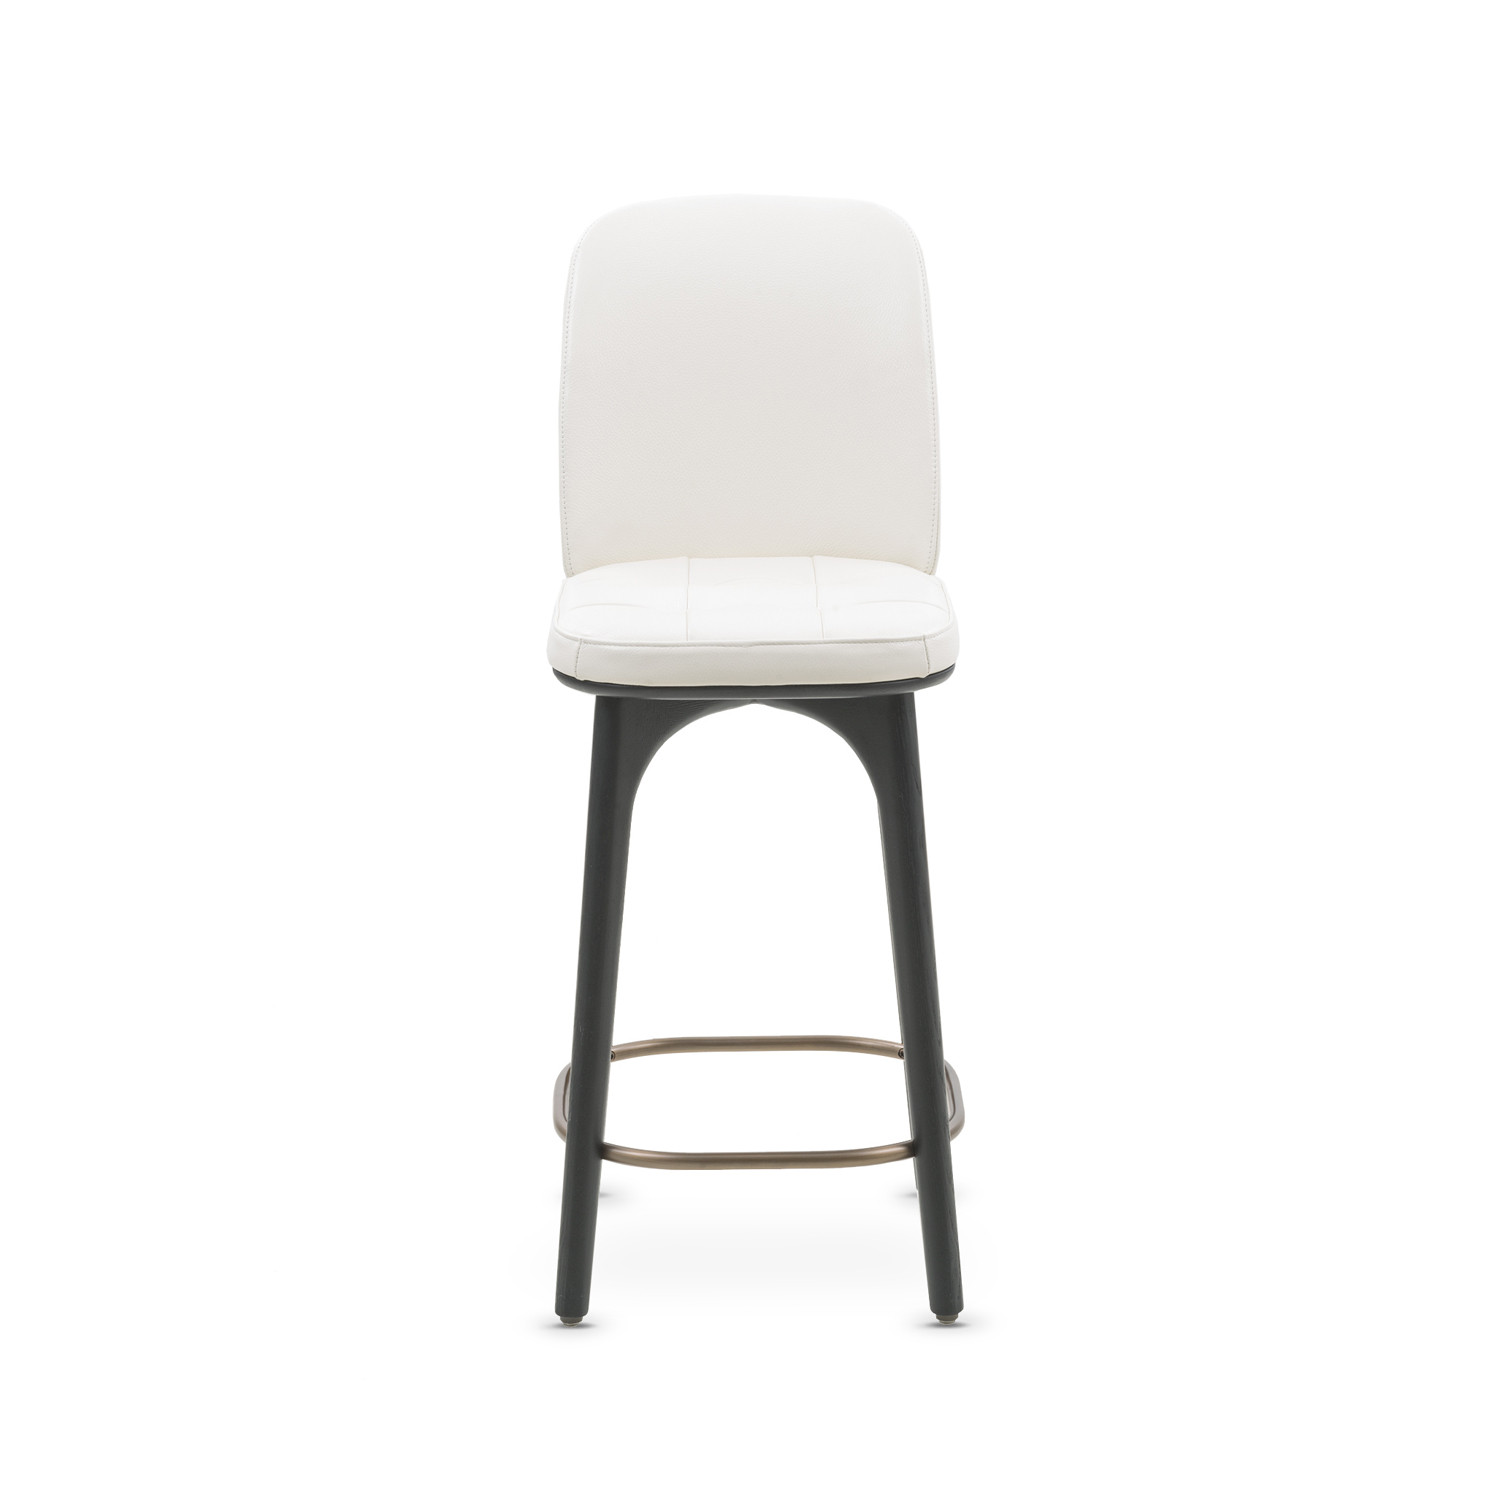 Utility Bar Stool with Backrest White Leather Medium  : 2798a5b274119136782e09a44e1c6fbdlarge from www.touchofmodern.com size 1500 x 1500 jpeg 68kB